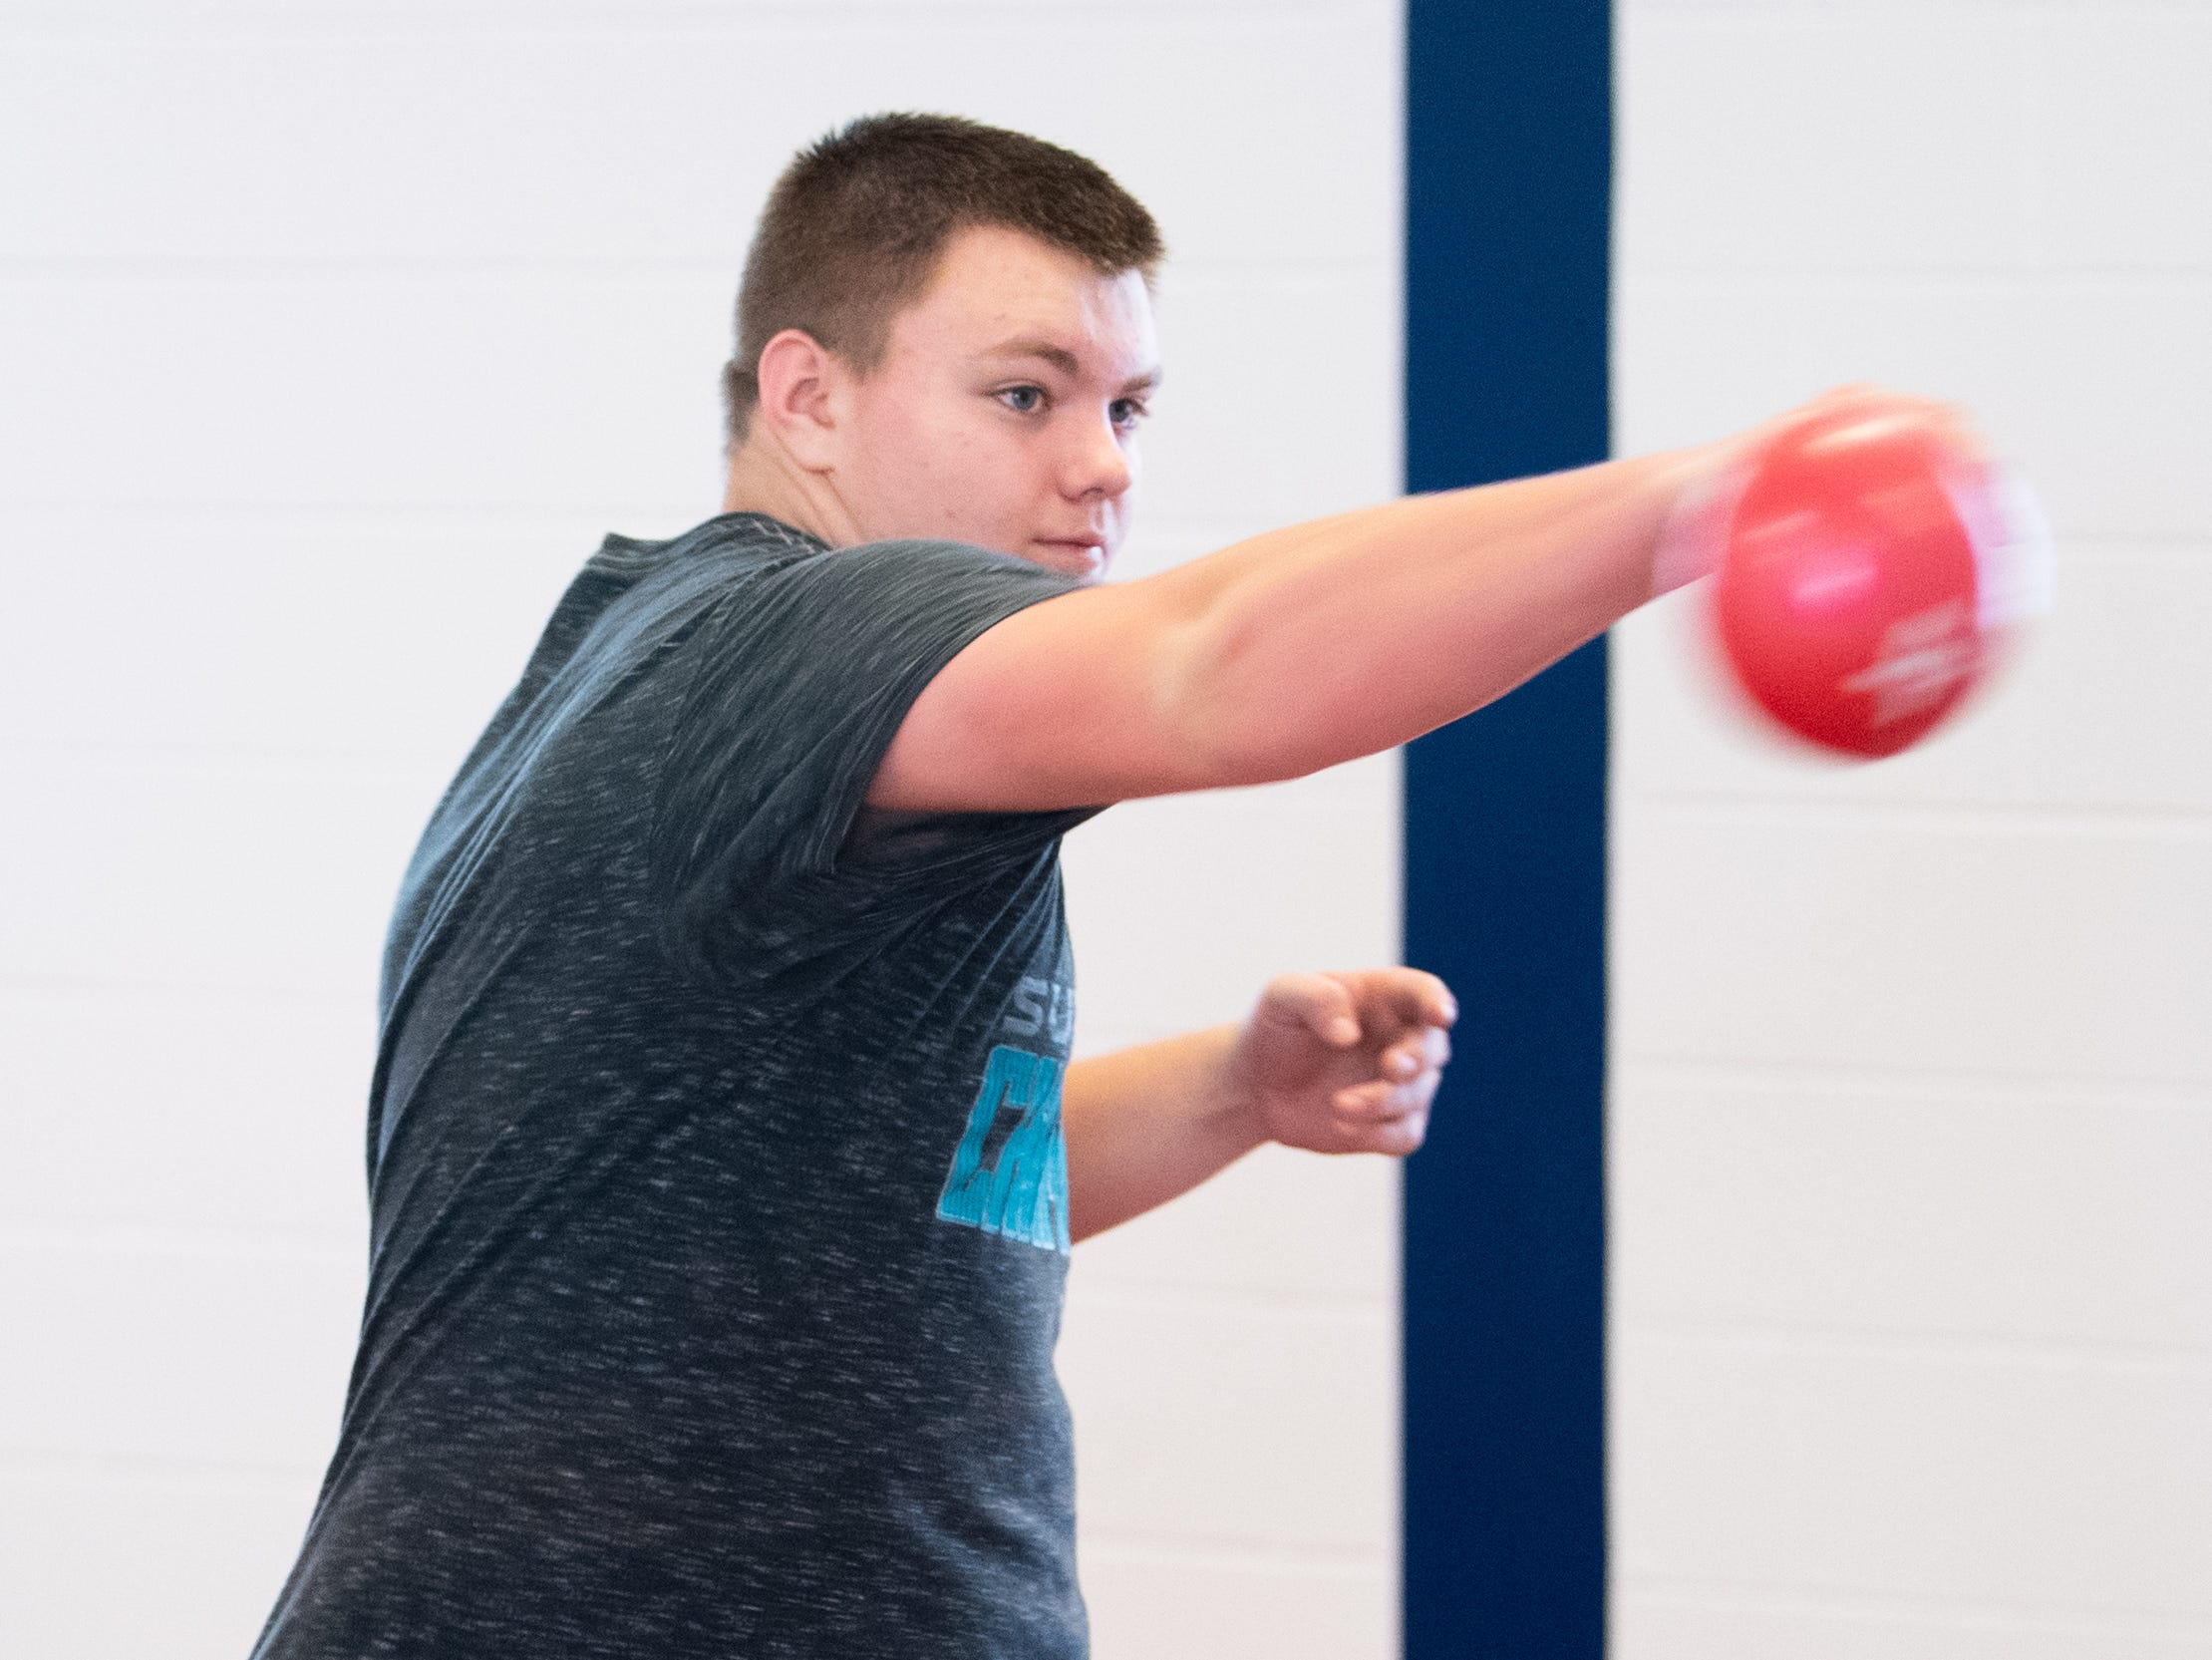 Throwers use small weighted balls to simulate the weight of a discus, March 5, 2019.